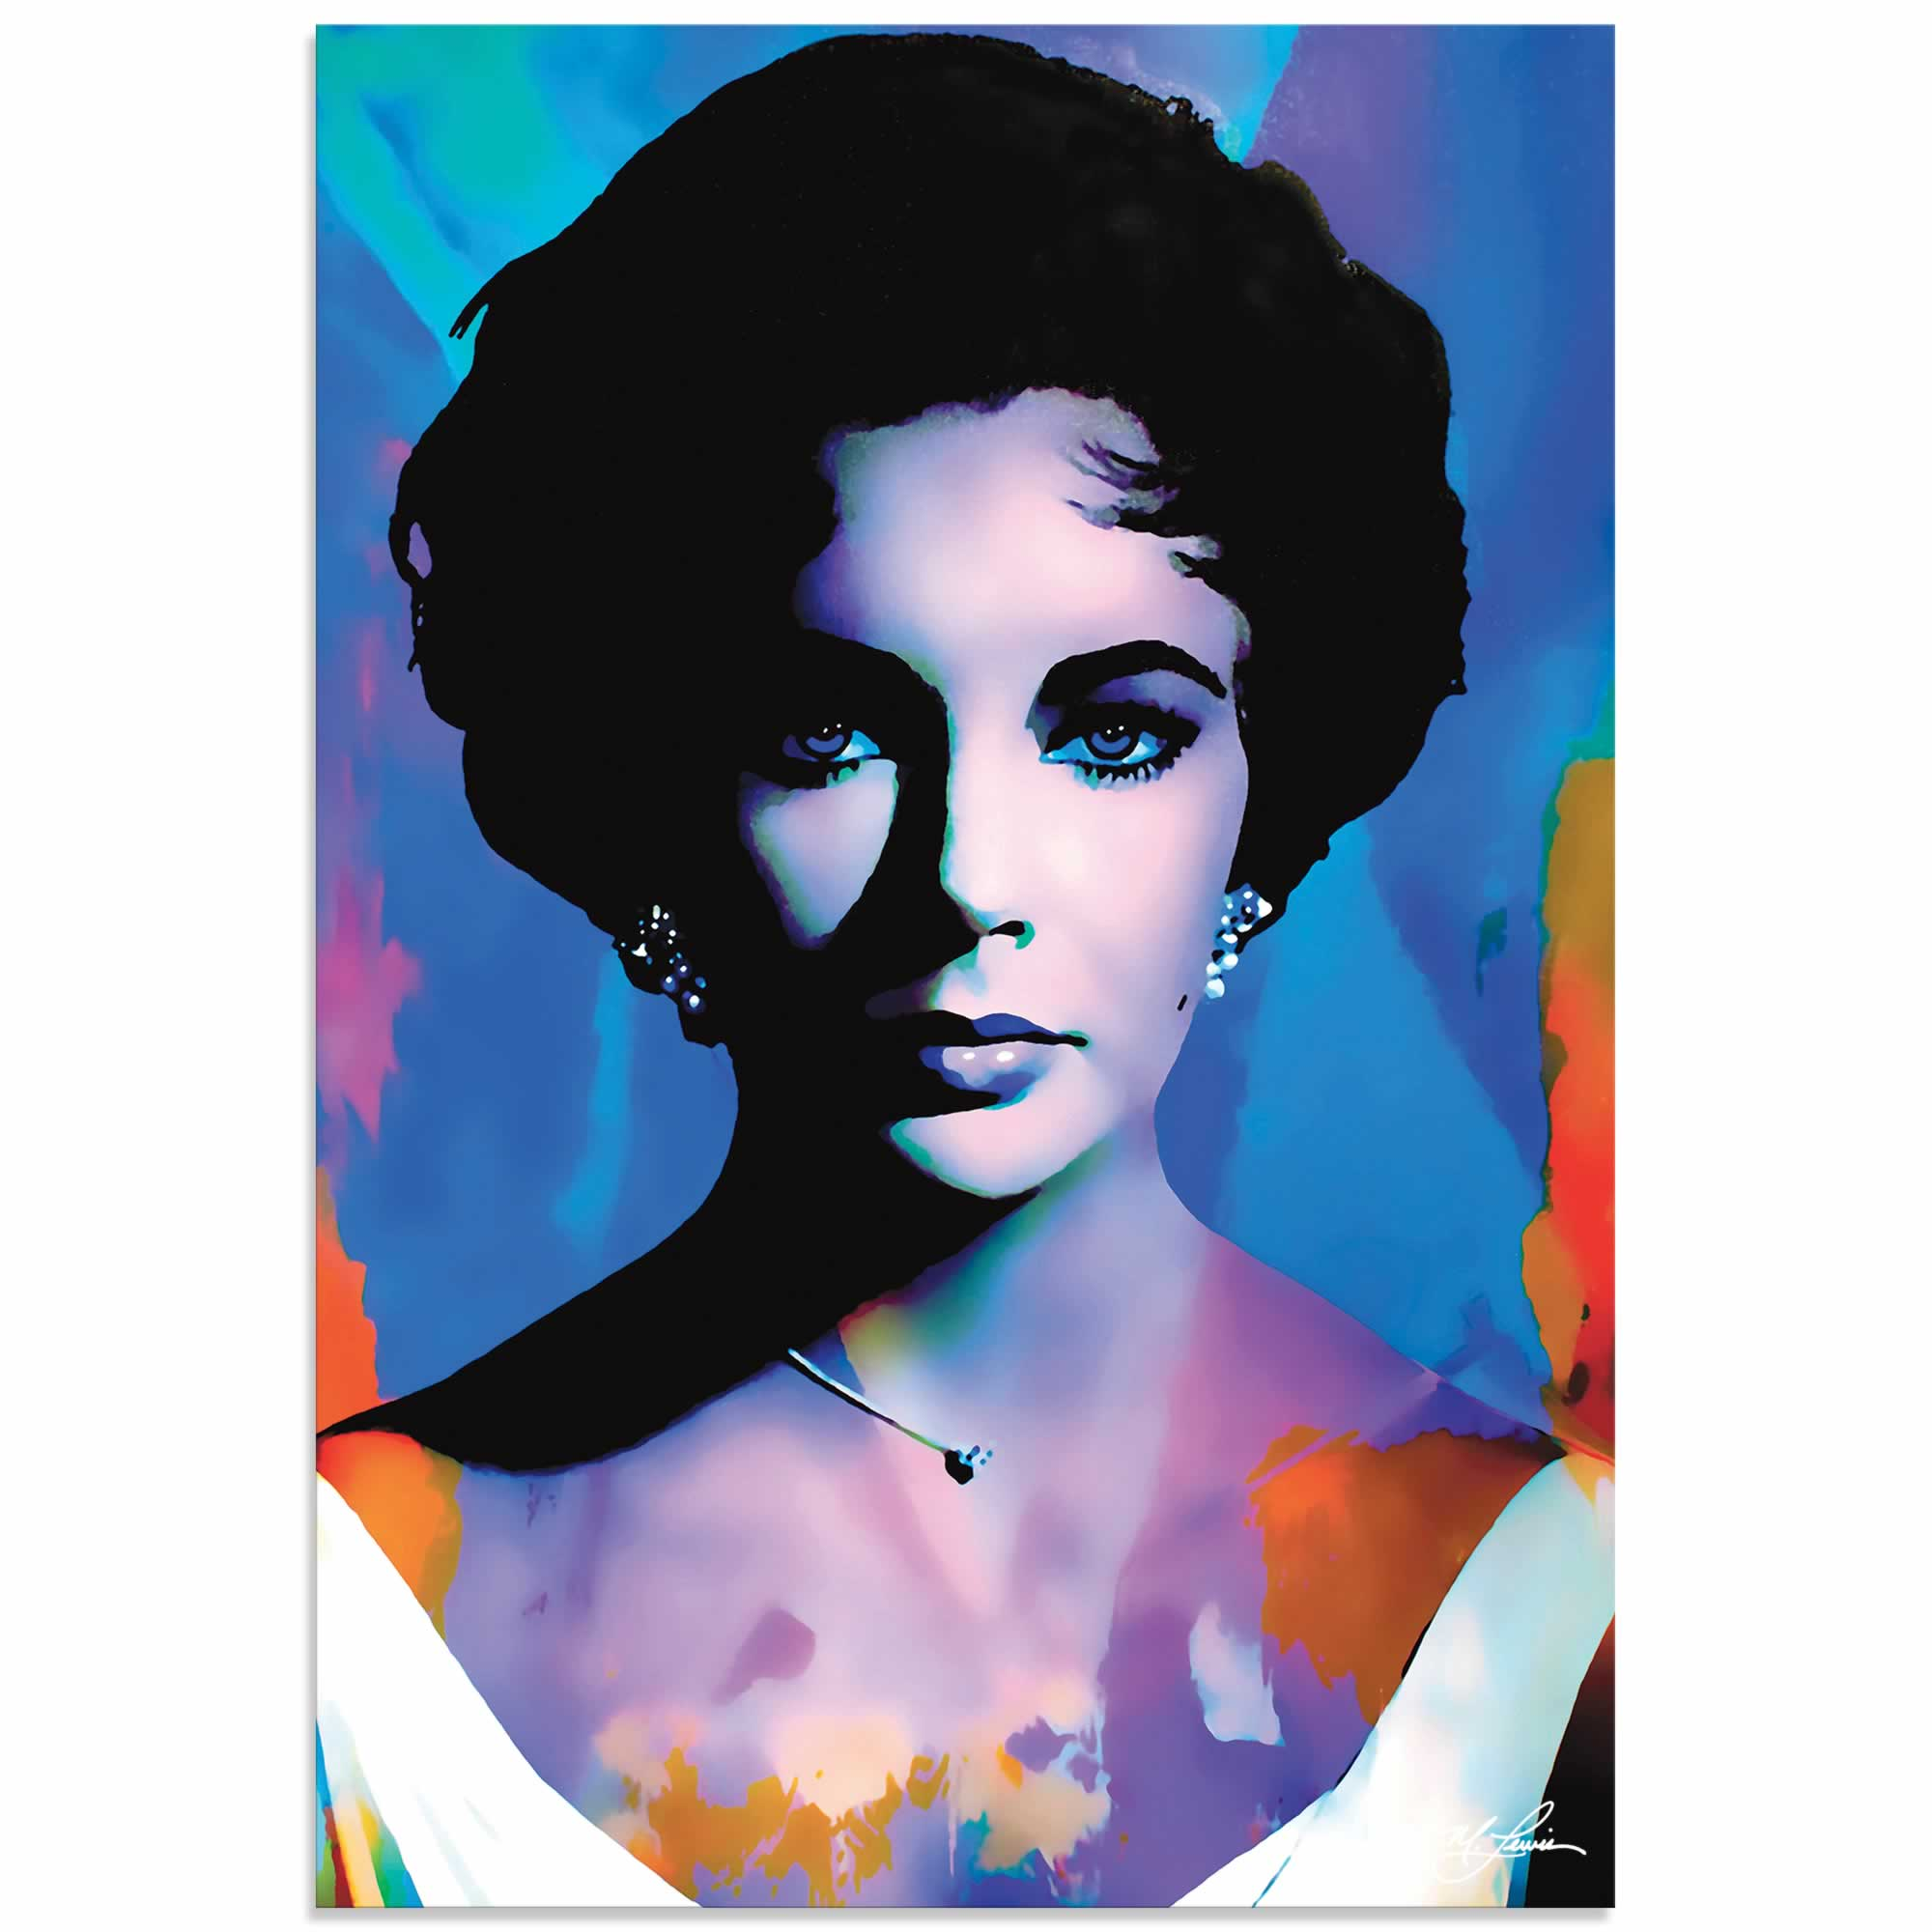 Elizabeth Taylor The Color of Passion | Pop Art Painting by Mark Lewis, Signed & Numbered Limited Edition